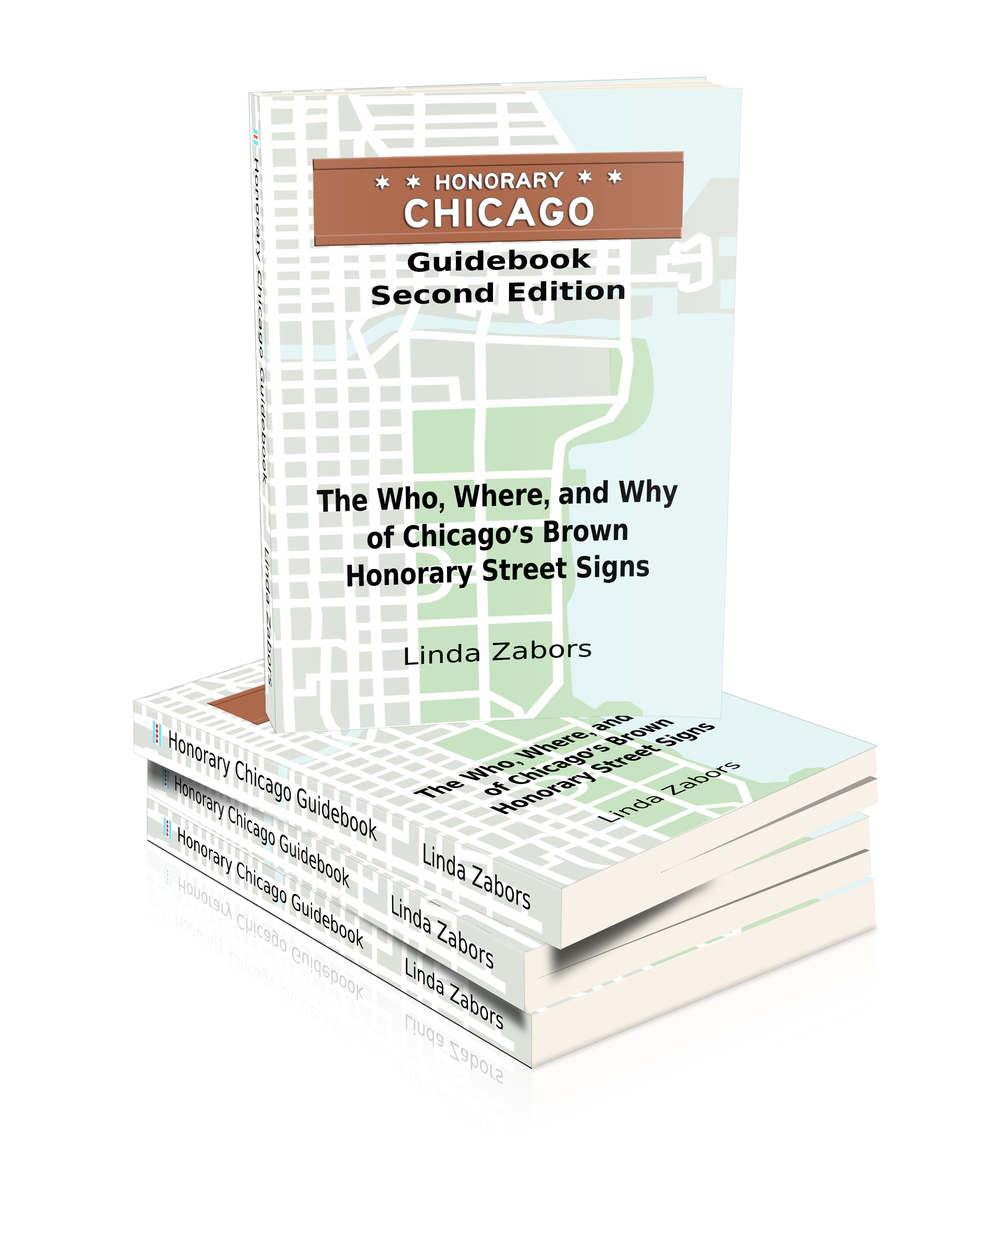 Honorary Chicago Guidebook by Linda Zabors